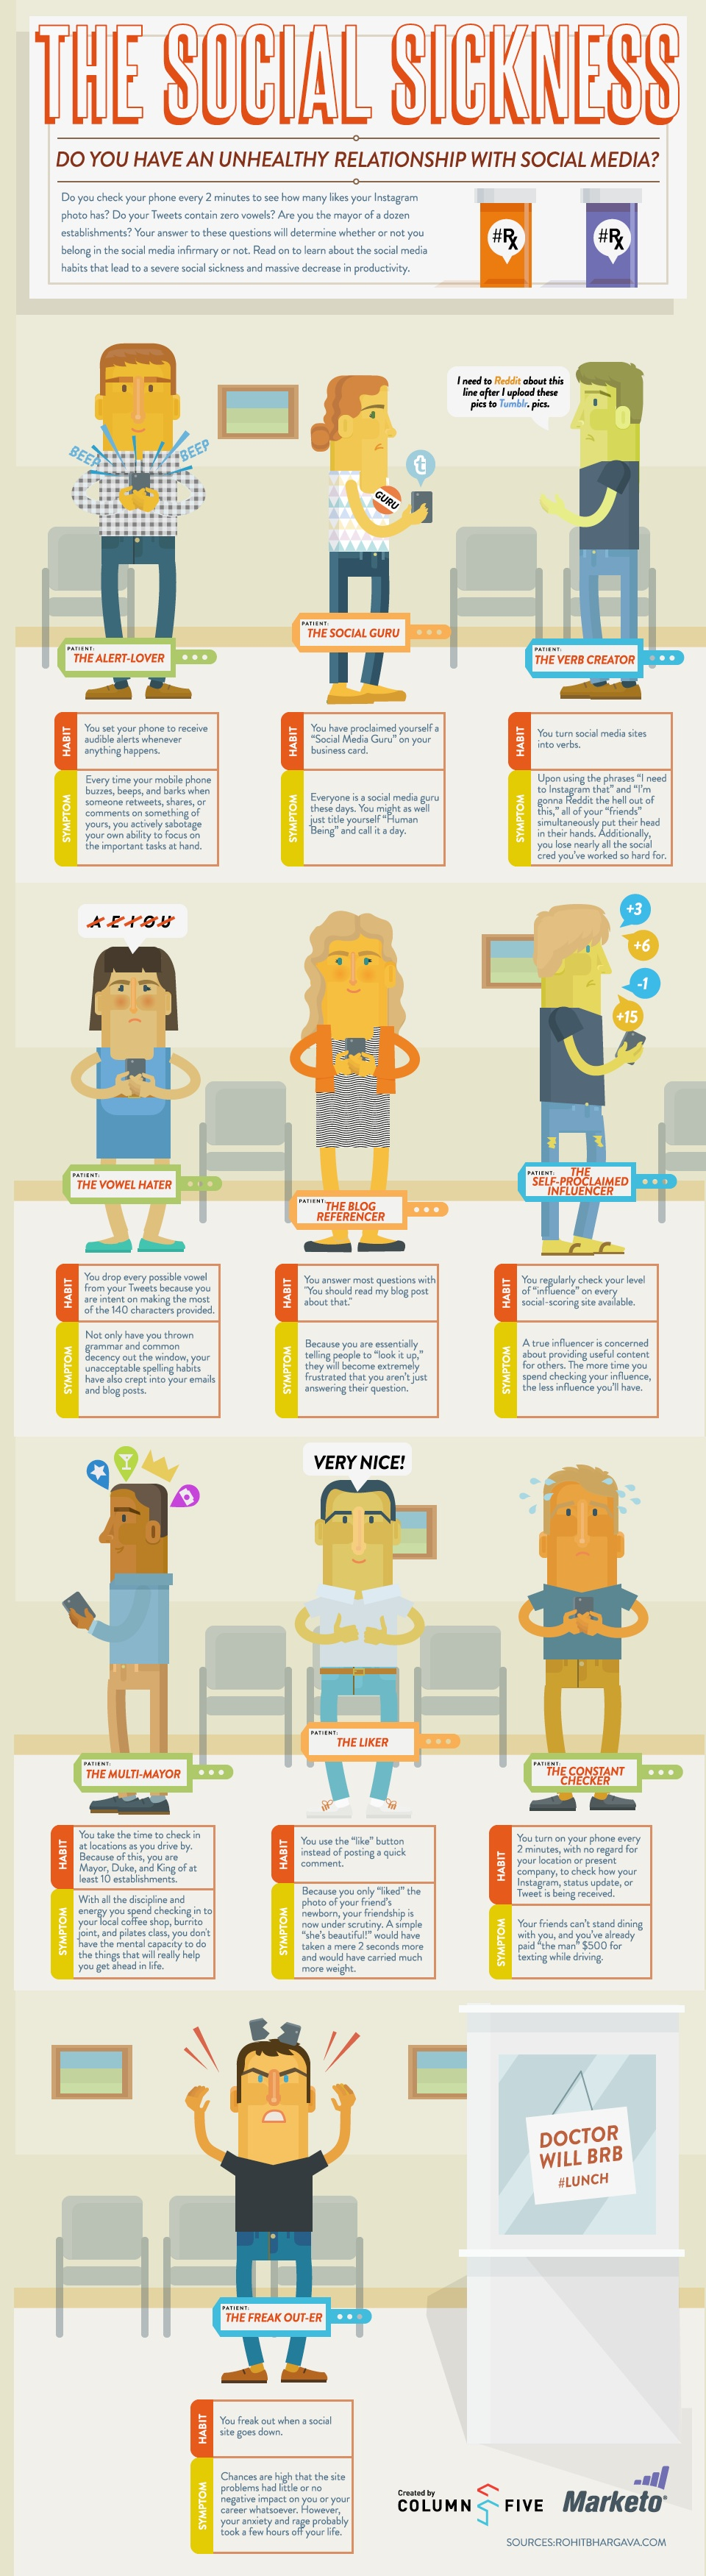 What Kind Of Social Media Addict Are You? [INFOGRAPHIC]